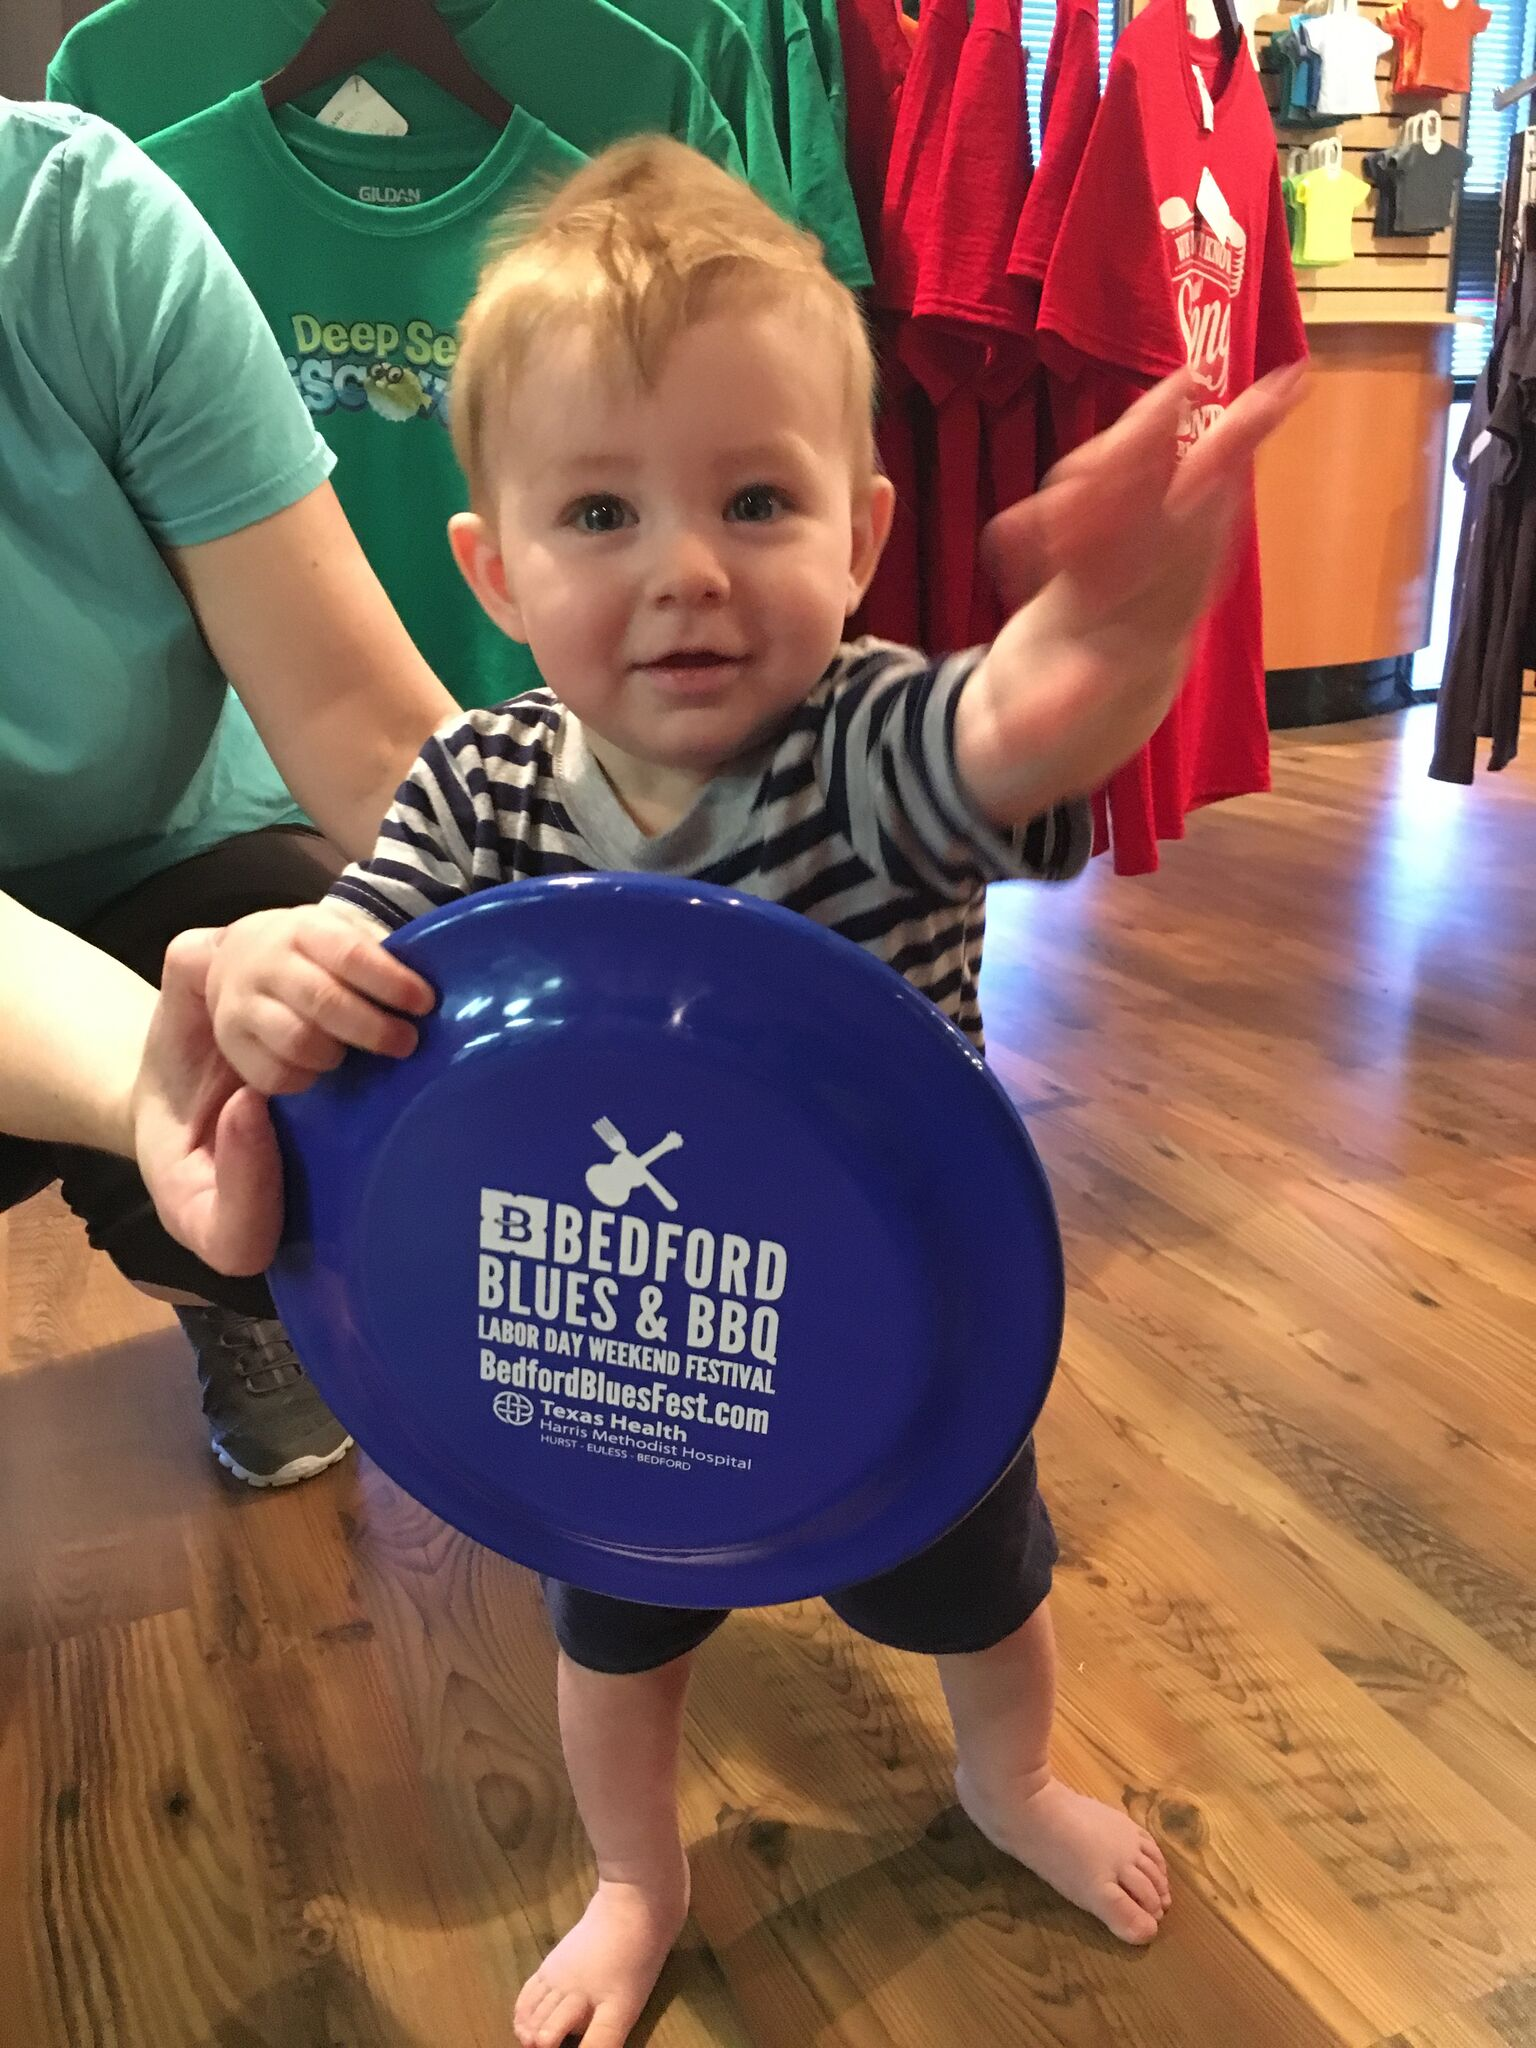 Bedford Blues And BBQ Frisbees